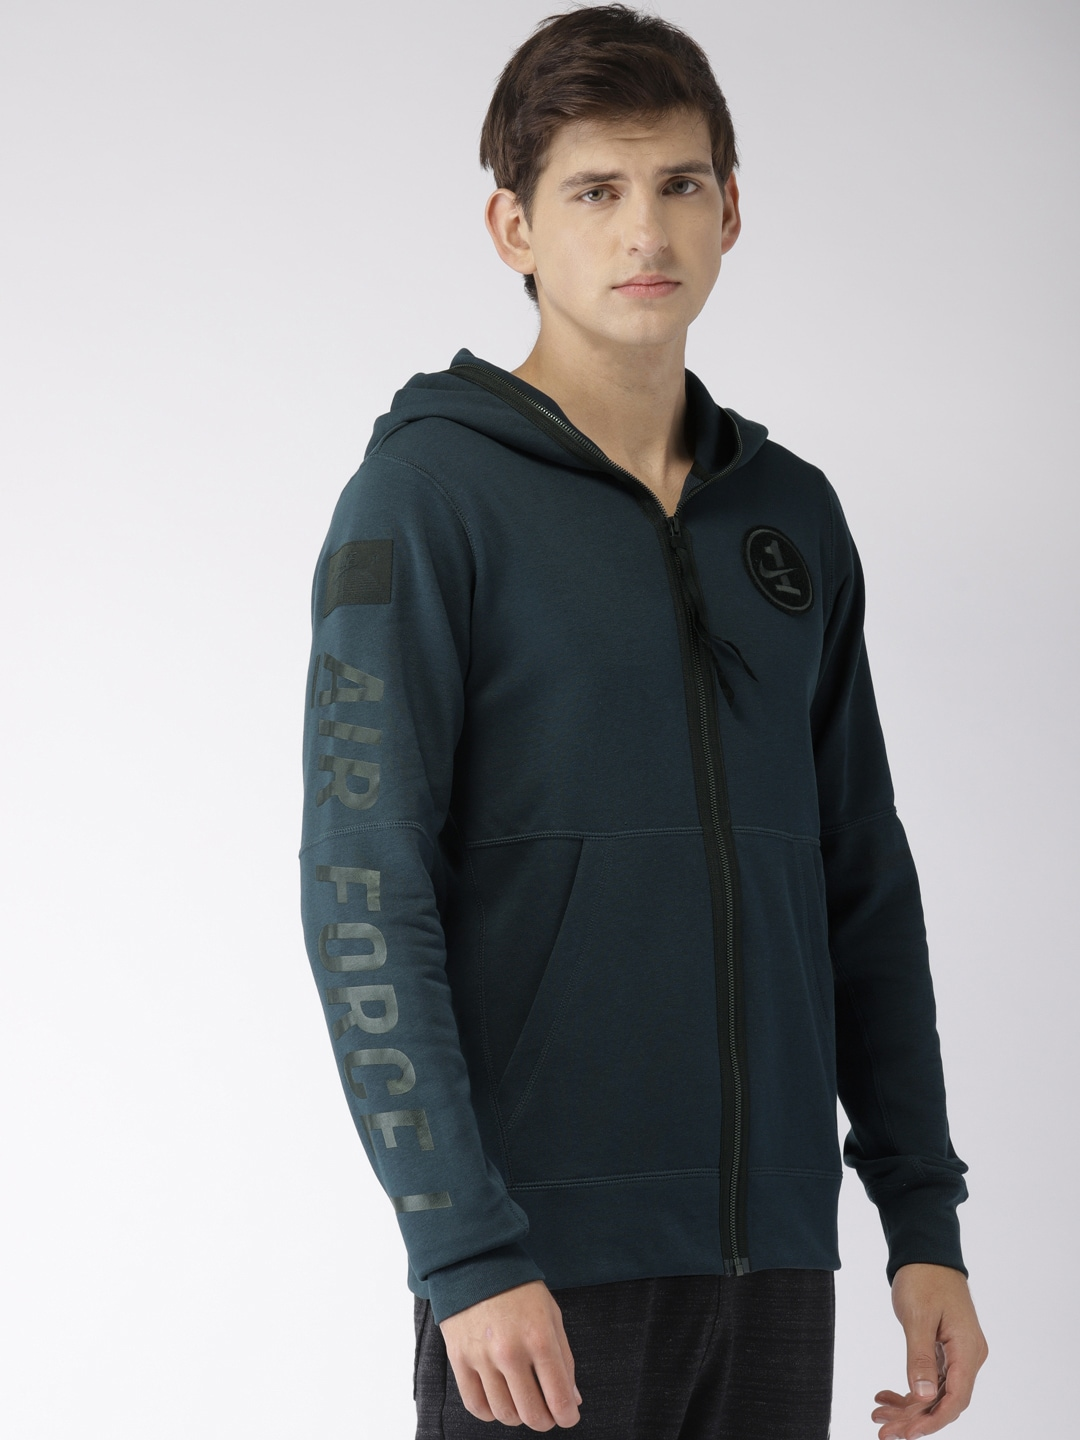 bb81aea00d9f7c Nike Casual Jackets Sweatshirts - Buy Nike Casual Jackets Sweatshirts  online in India